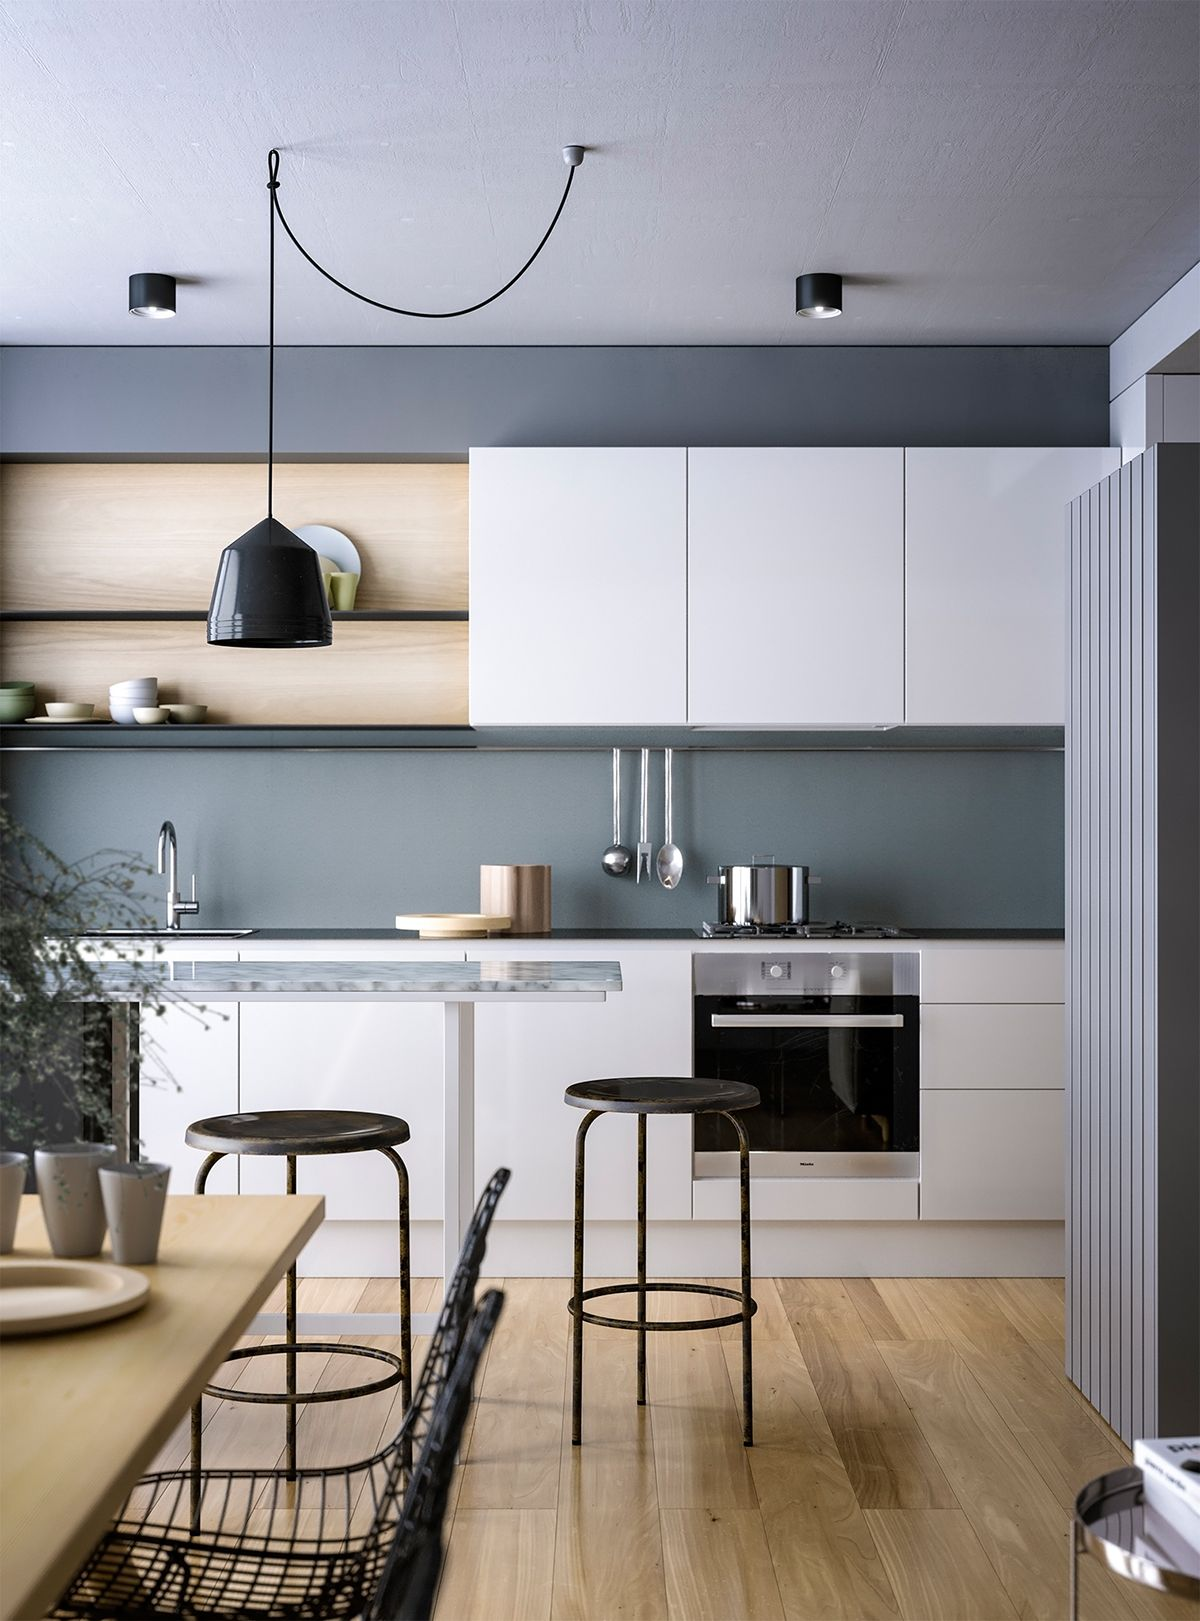 kitchen accessories design%0A Explore White Wood Kitchens and more